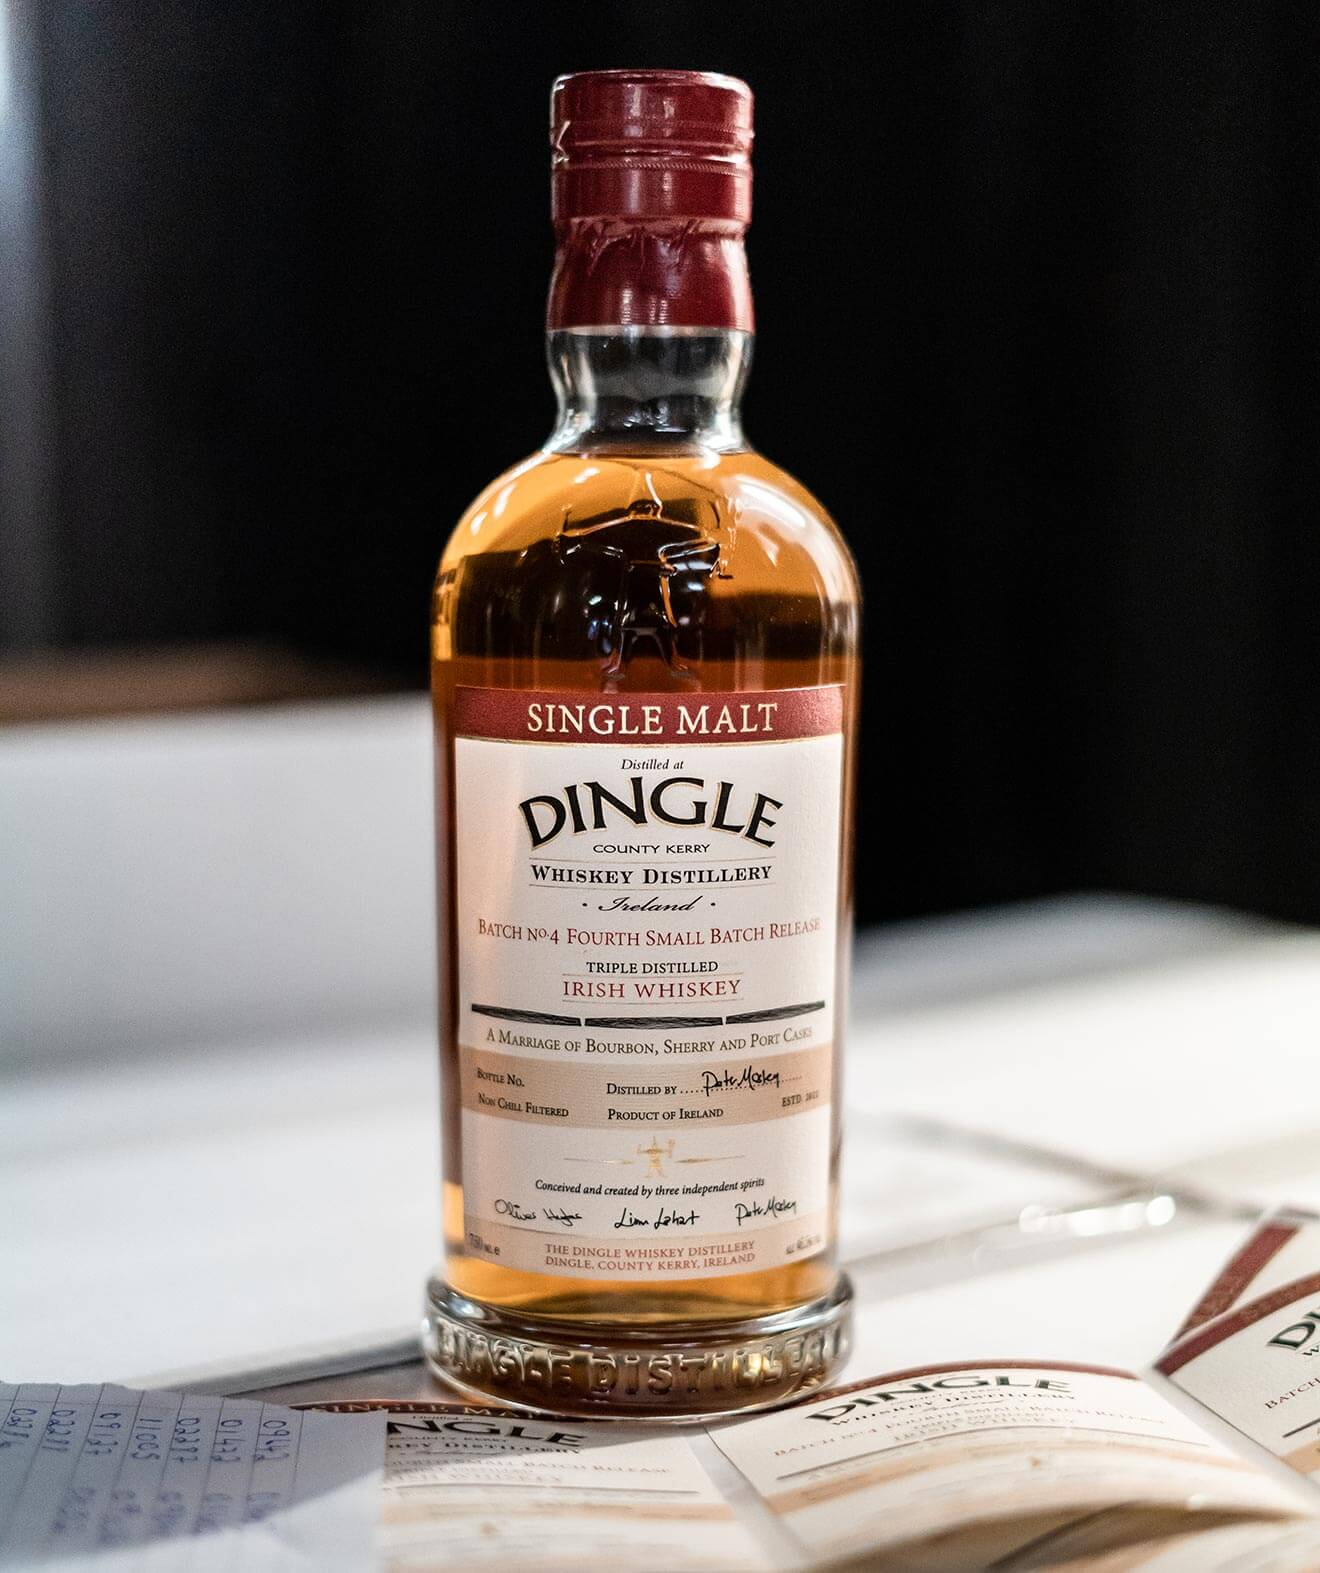 Dingle Single Malt Batch No. 4, bottle image